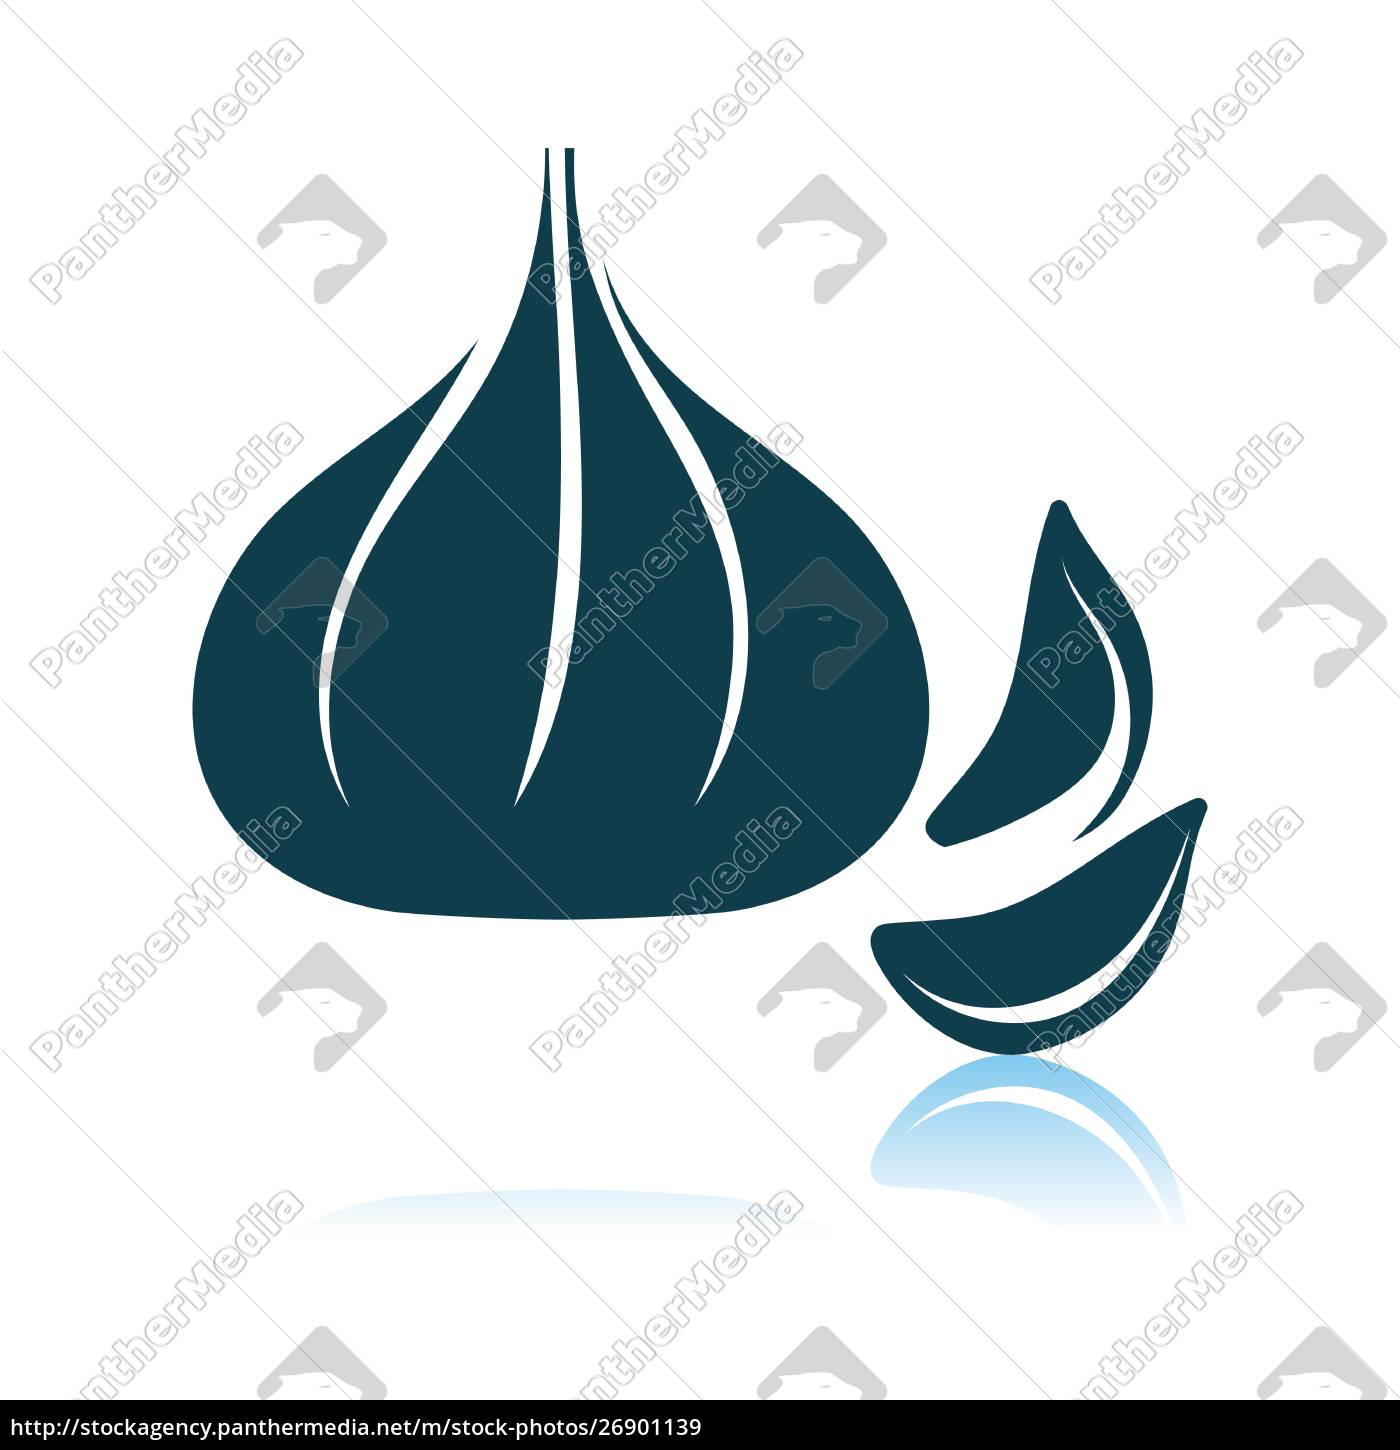 garlic, icon, on, gray, background - 26901139